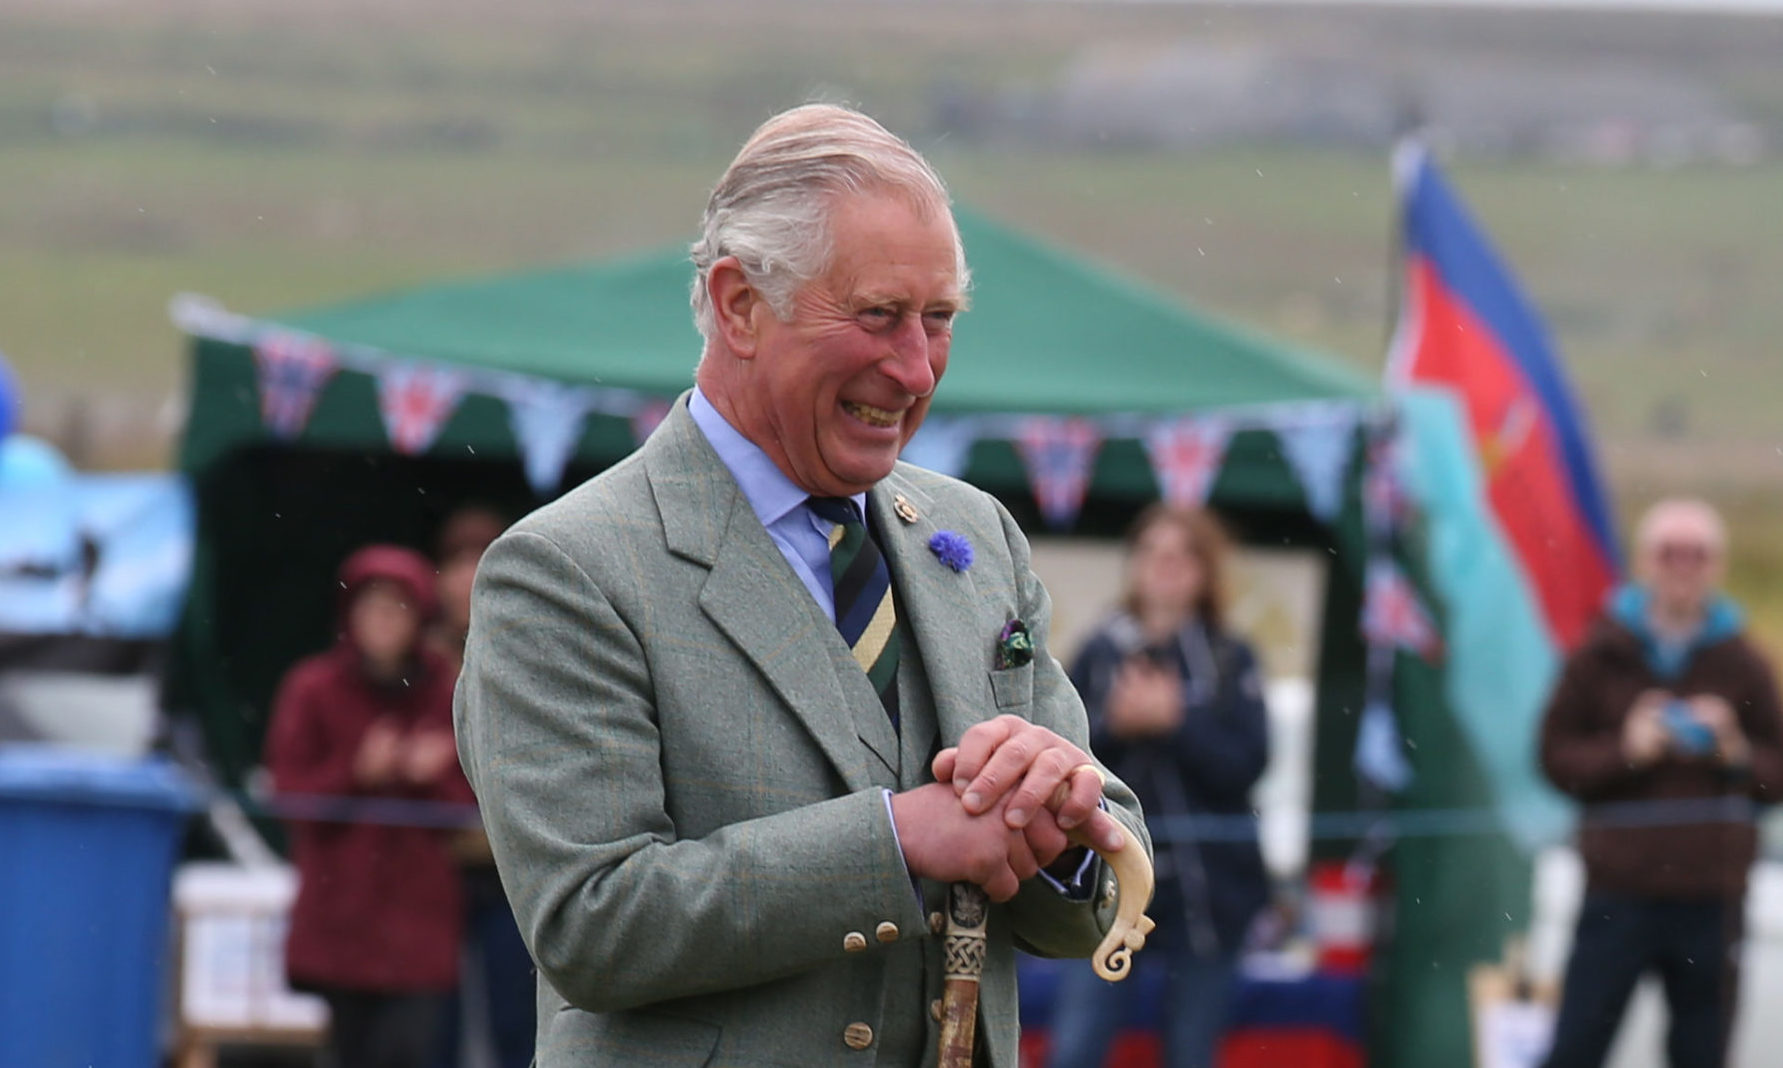 The Prince of Wales, also known as the Duke of Rothesay, attends the Mey Highland games which were held in a nearby field to John O' Groats, Scotland, due to a waterlogged field in Mey. PRESS ASSOCIATION Photo. Picture date: Saturday August 6, 2016. See PA story ROYAL Charles. Photo credit should read: Andrew Milligan/PA Wire